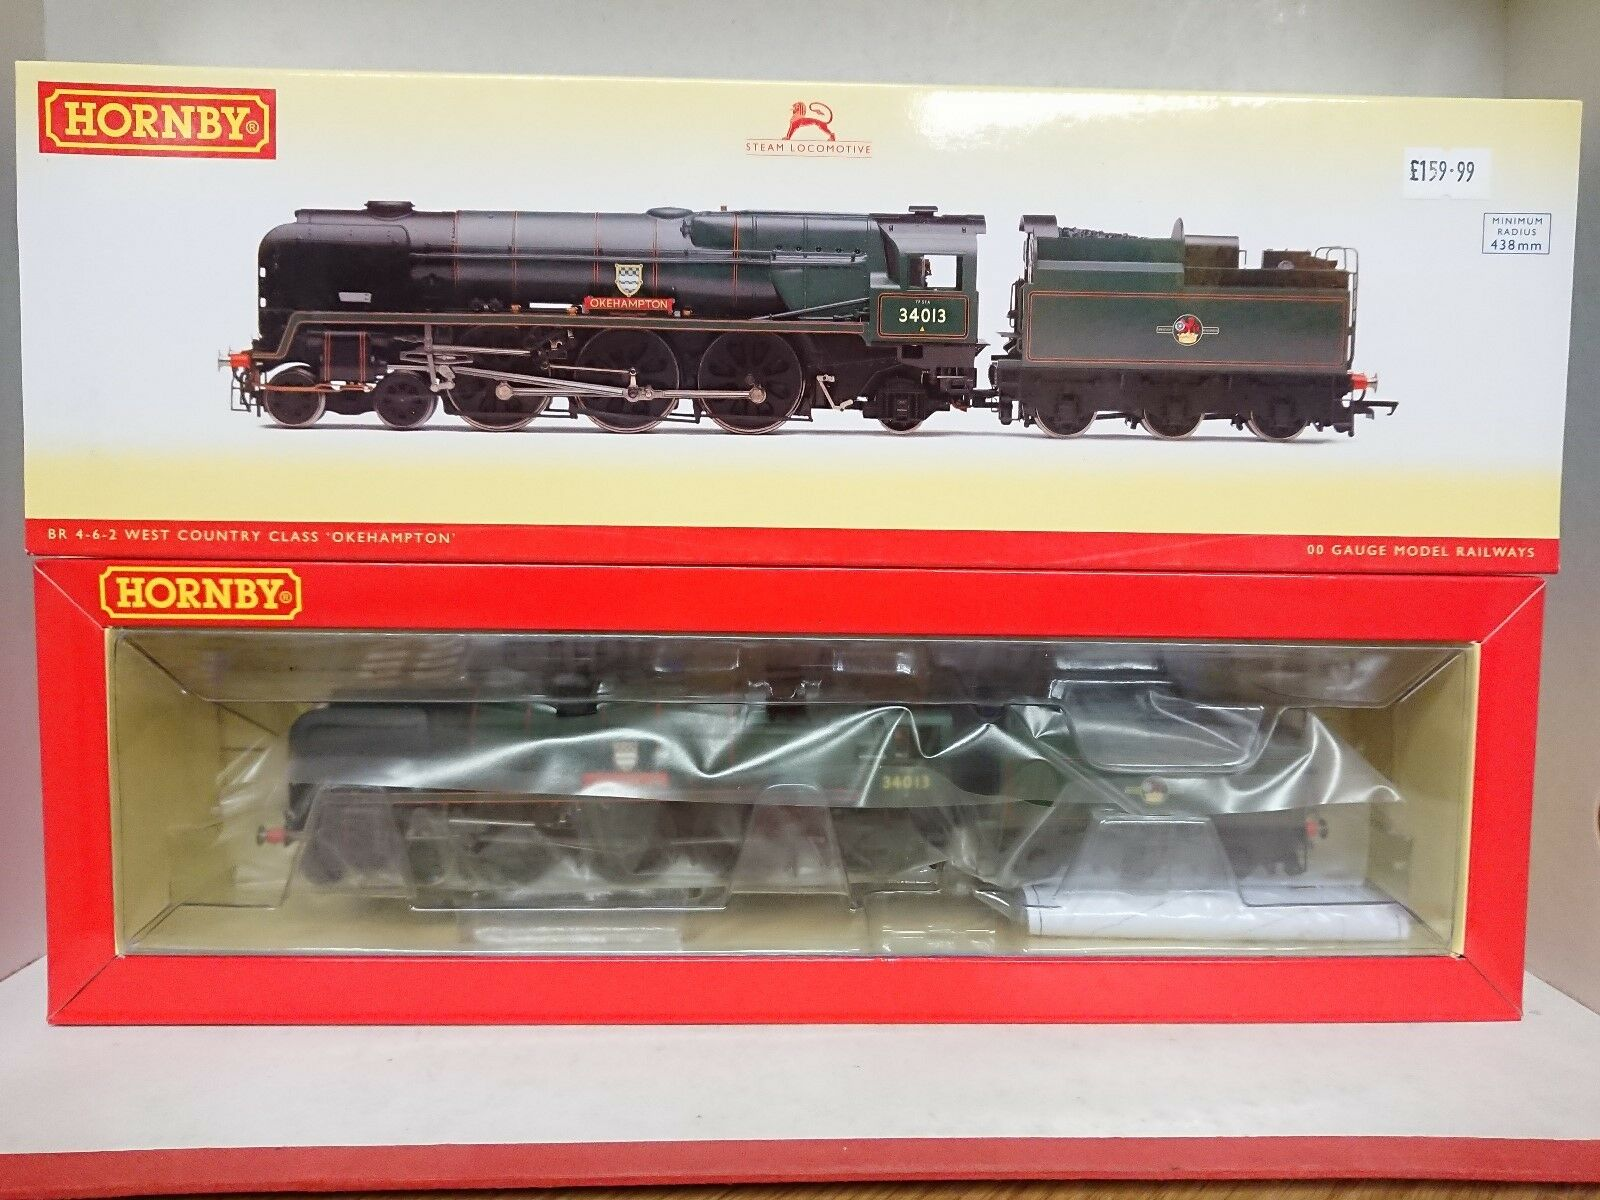 Hornby R3203 BR 4-6-2 Rebuilt West Country Class OKEHAMPTON 34013 DCC Ready NEW